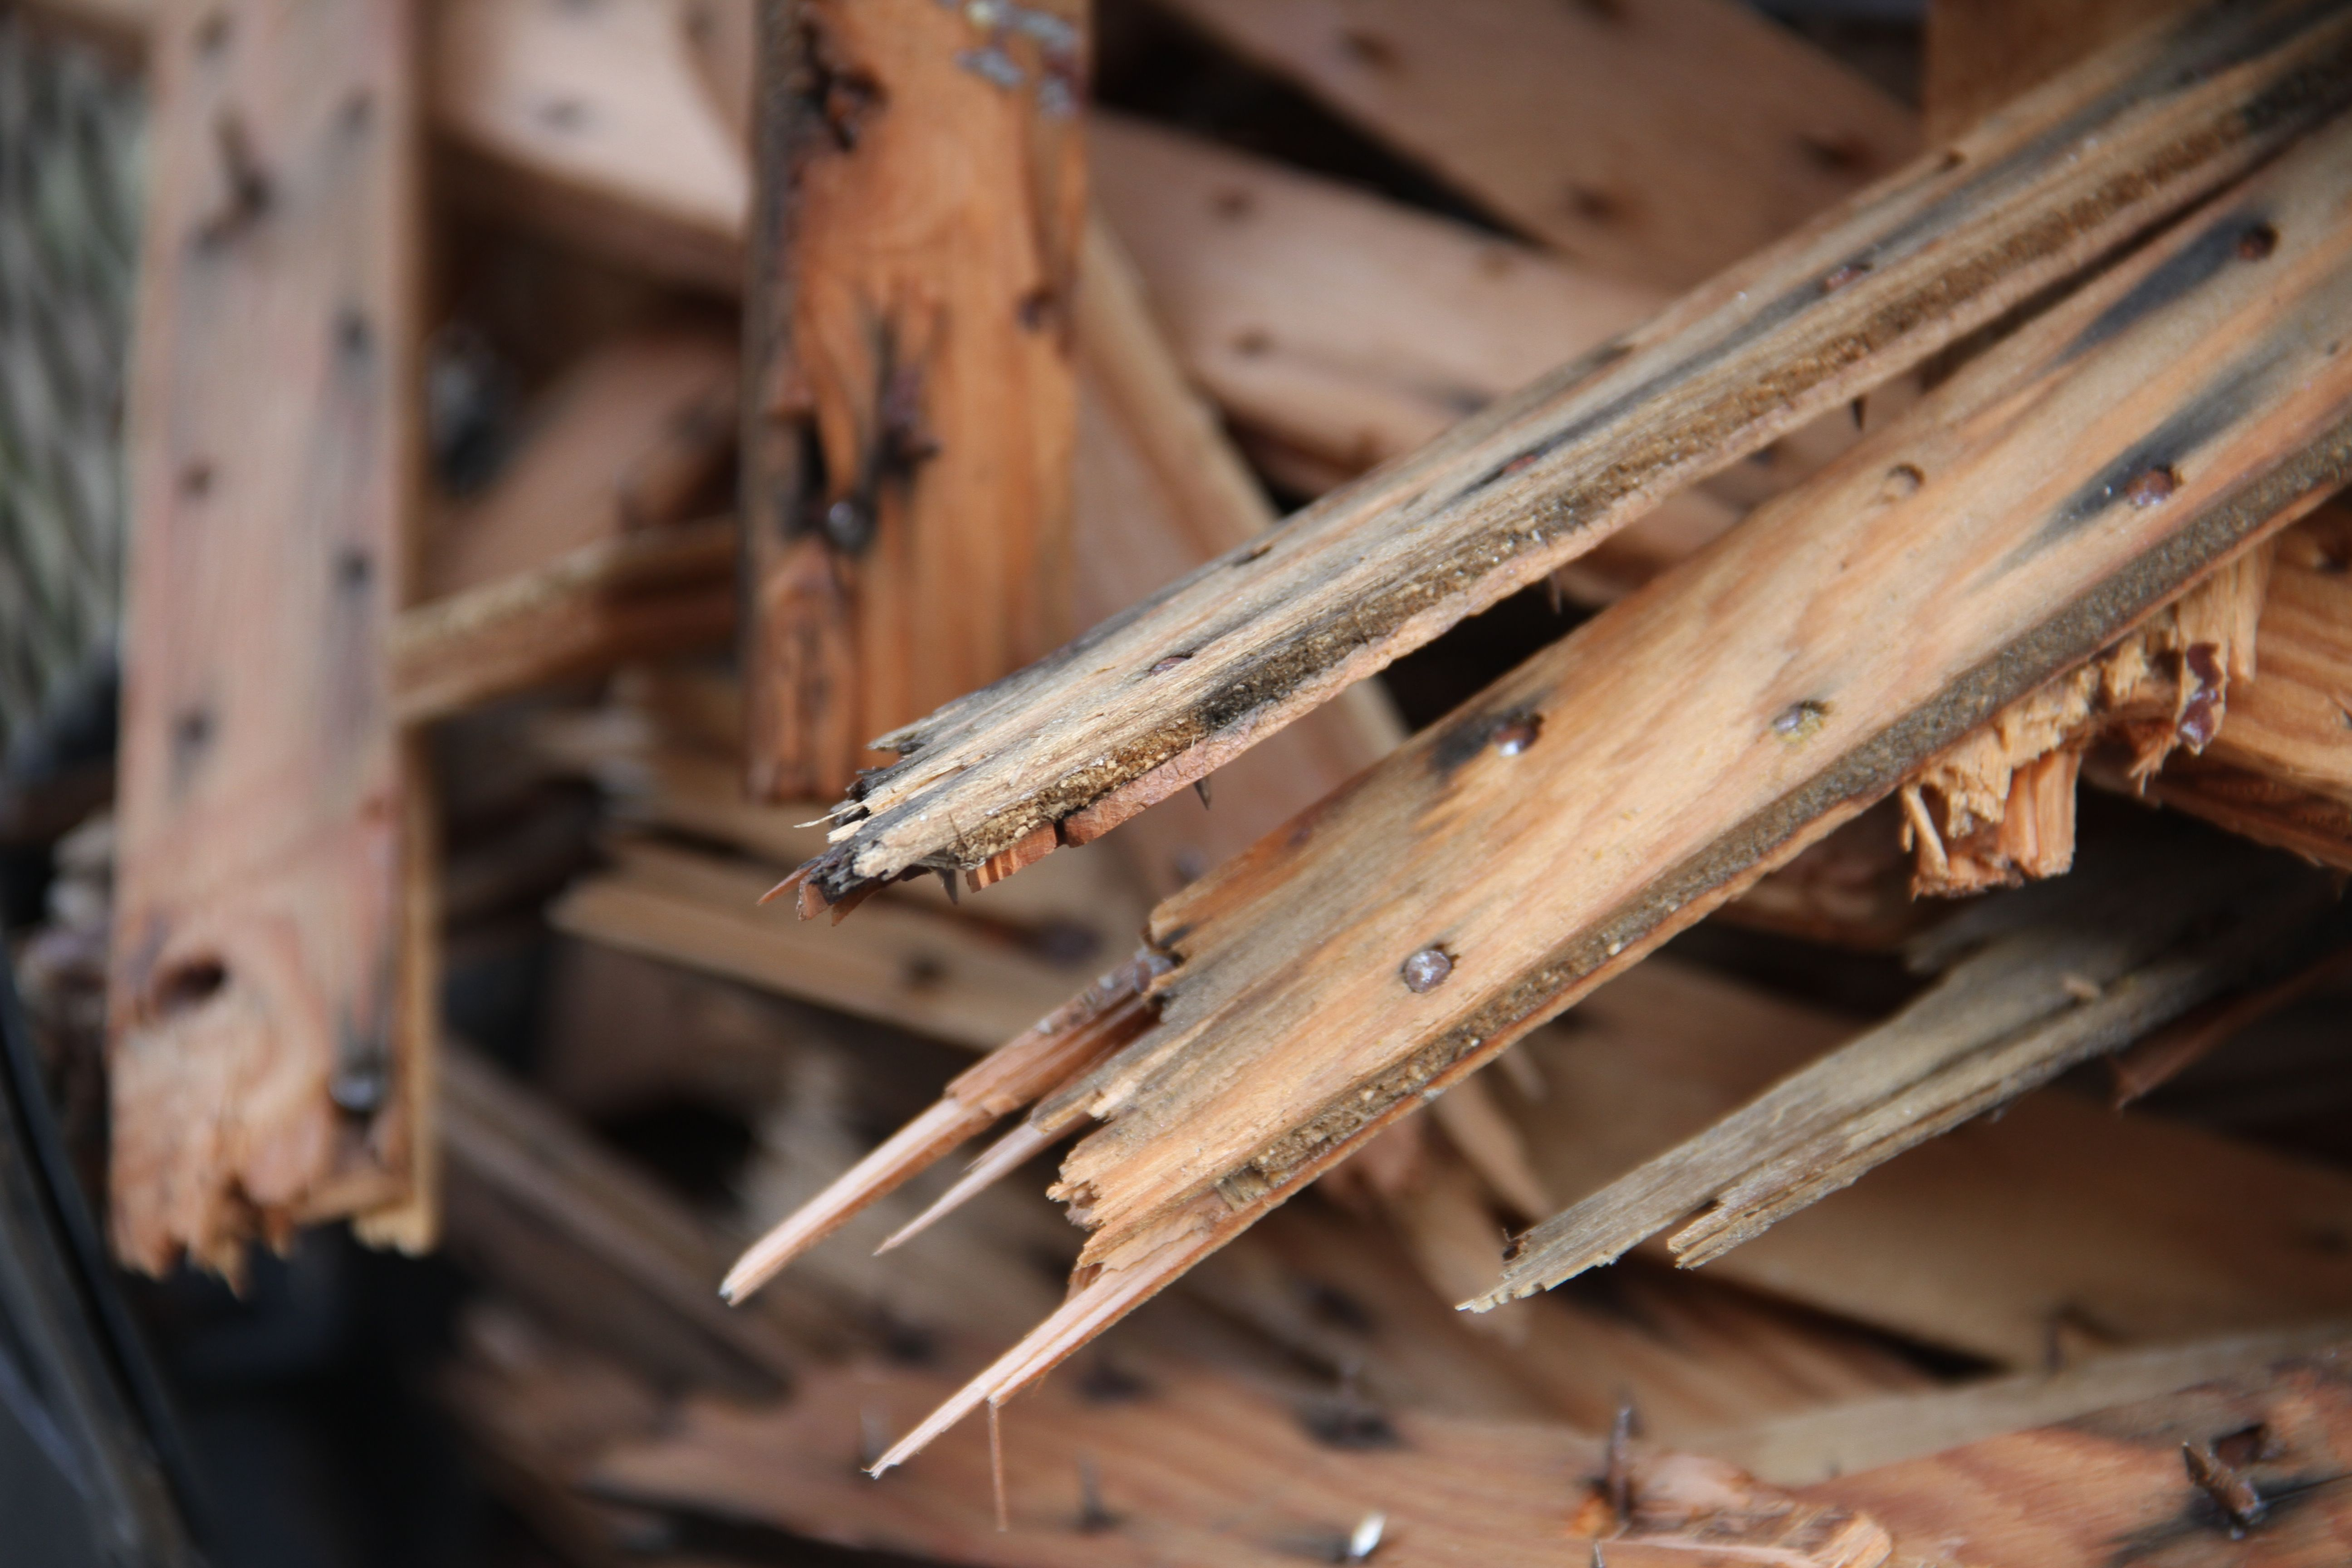 Beauty shot: tack strips. Jeff made a pile of these in our little chimenea outside where he intends to burn them up in one fell swoop.